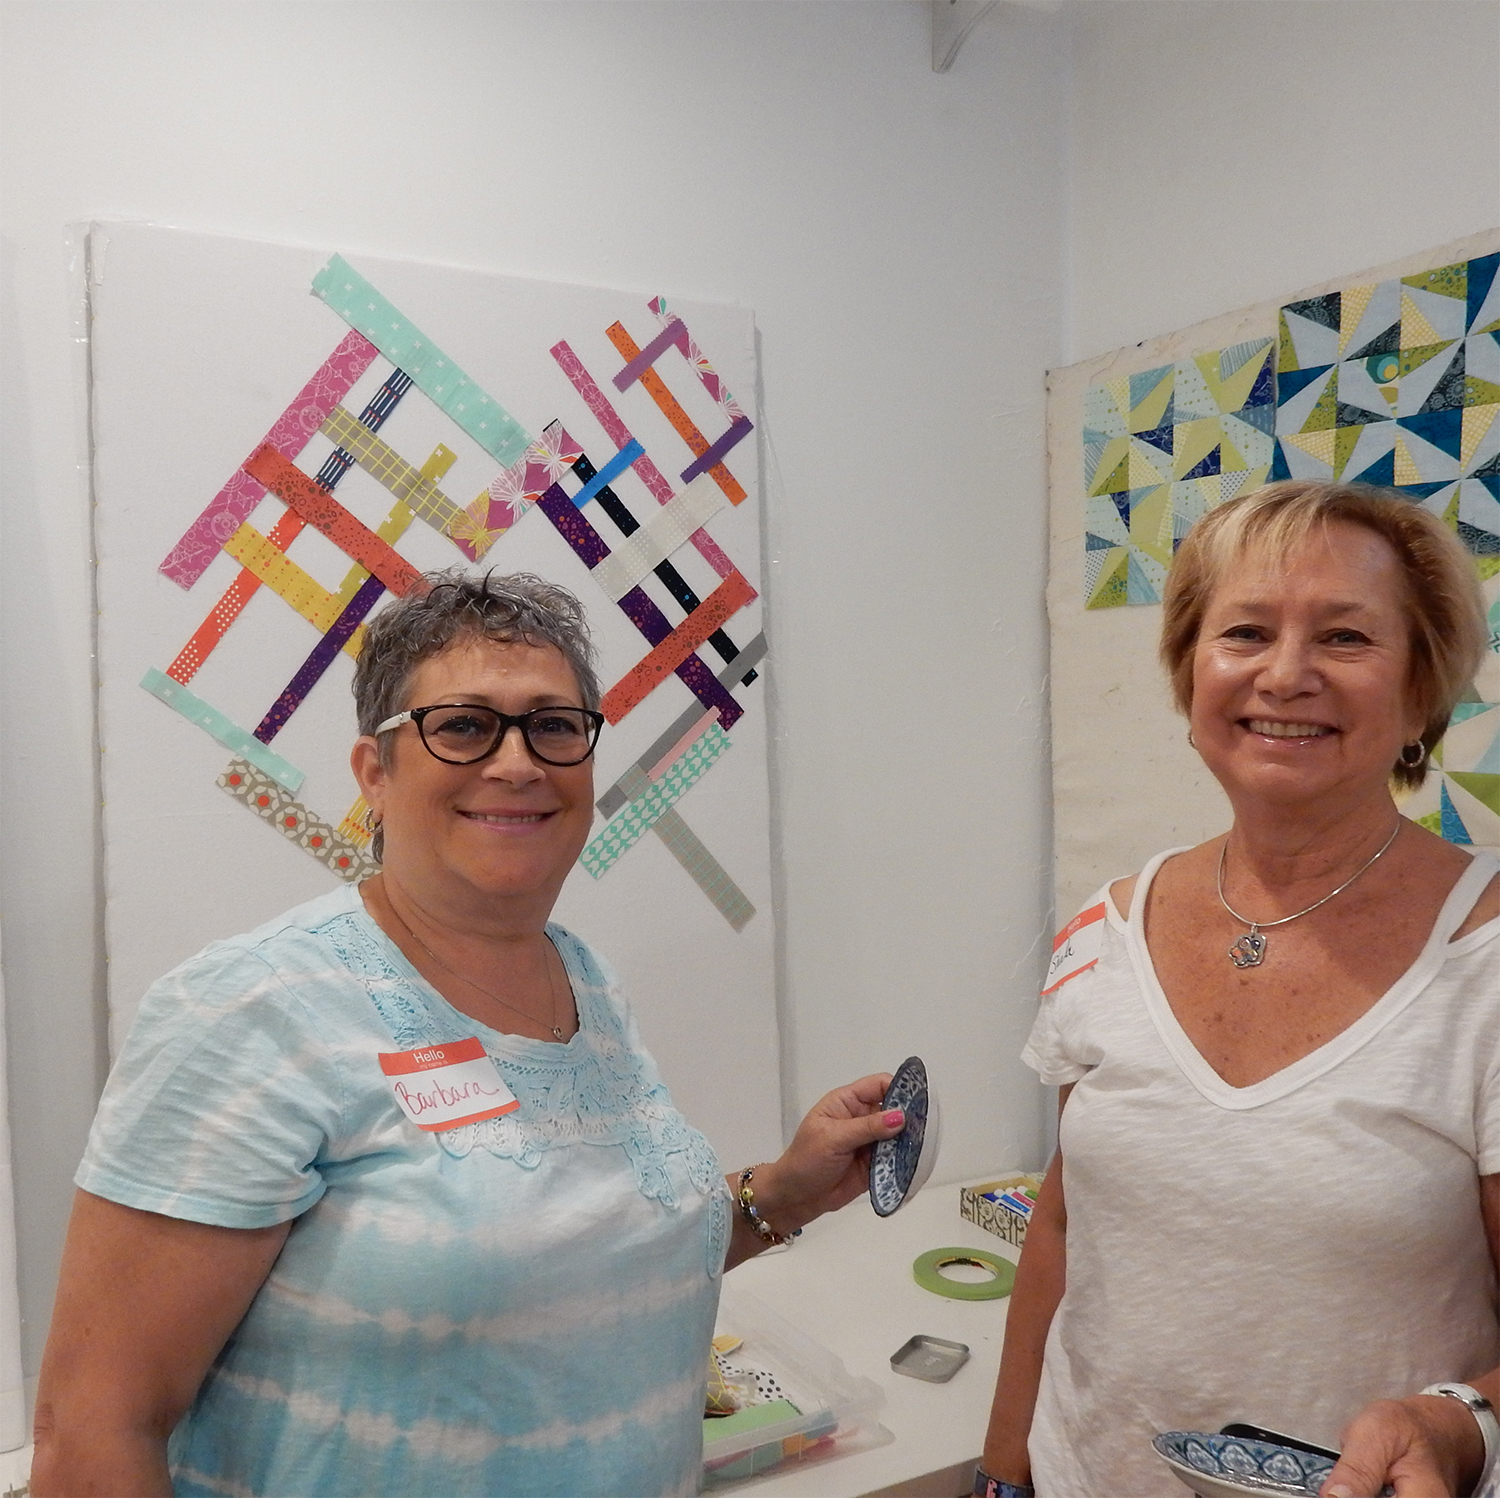 Barbara and Sheila designed a quilt using some strings and strip pieces.